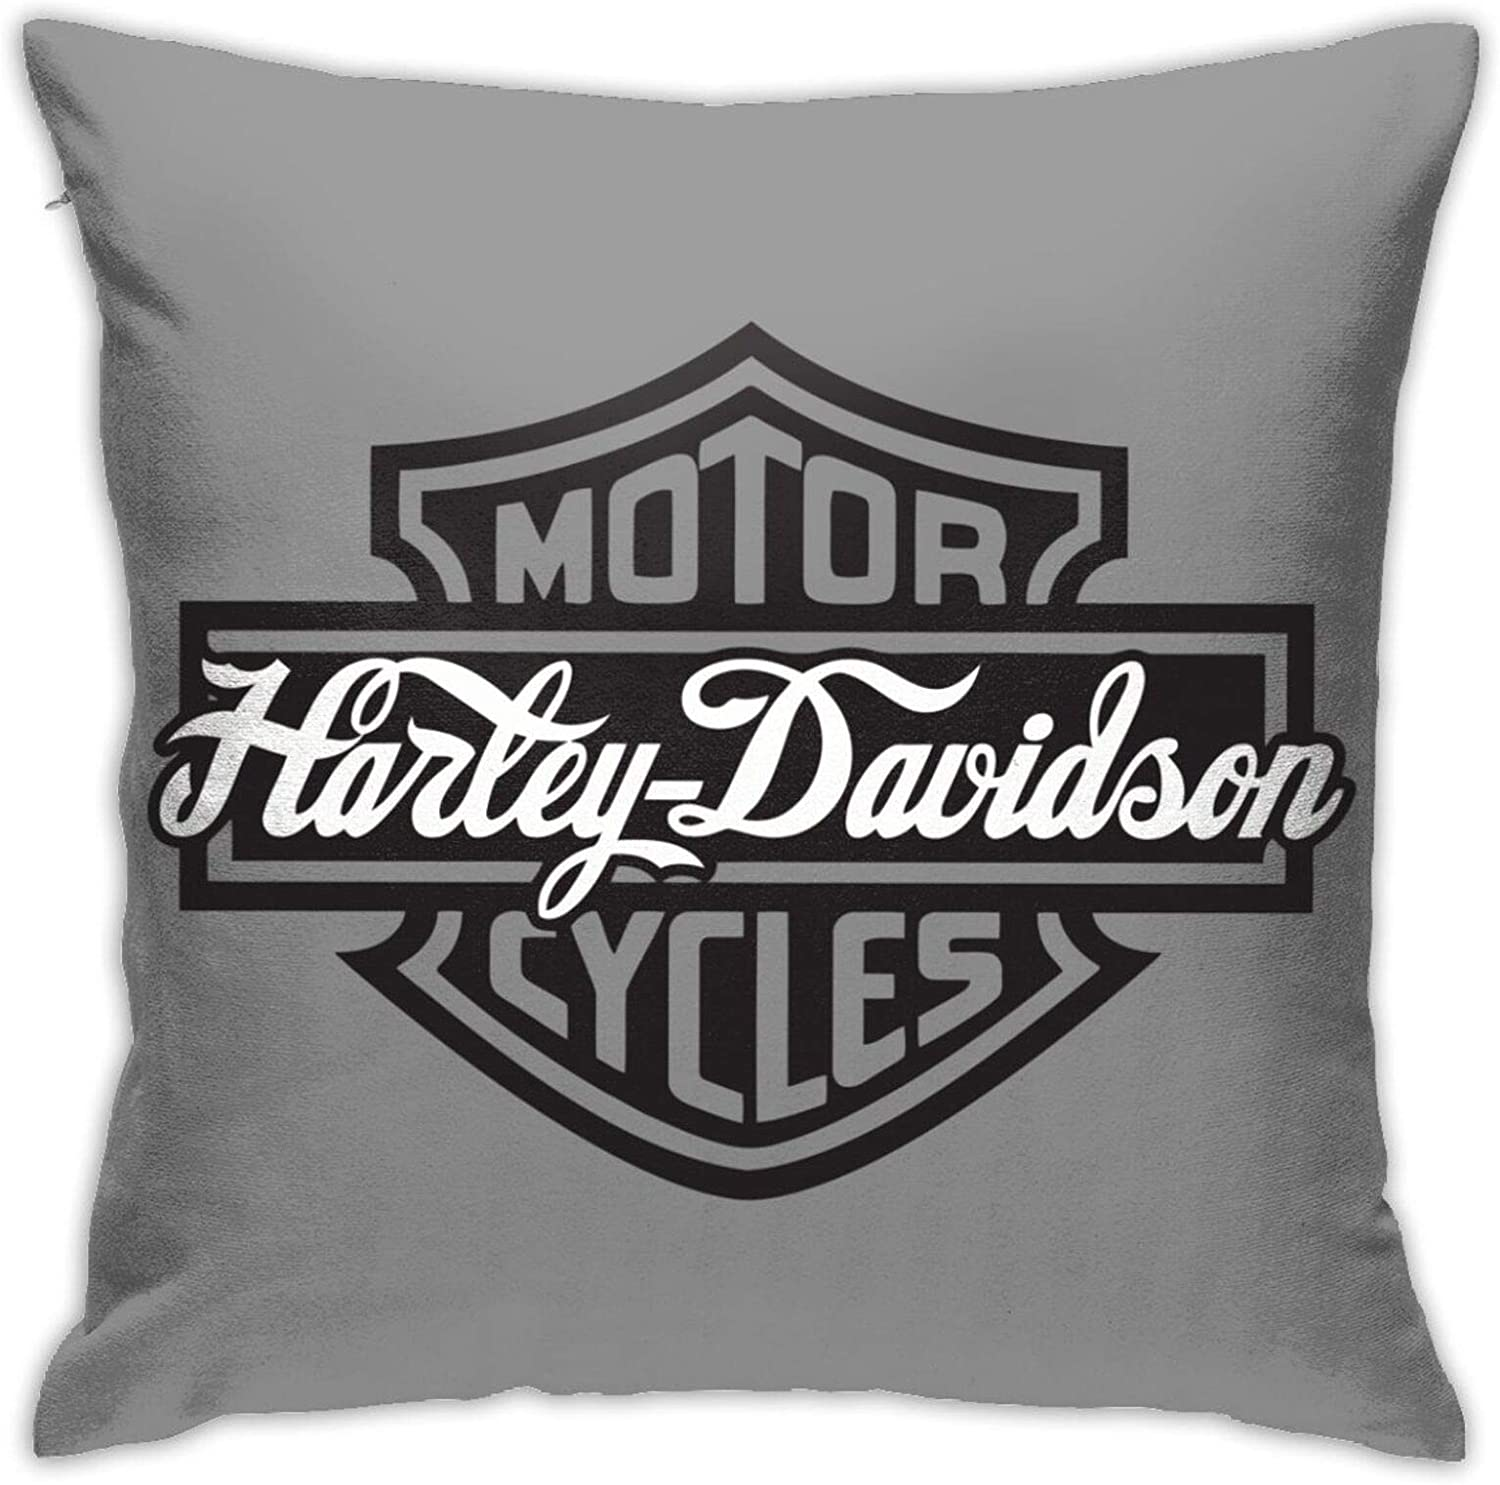 Epic Poetry Harley Davidson Series Polyester Decorative Square Pillow Cover Home Sofa Bedroom Office Car Seat Cover